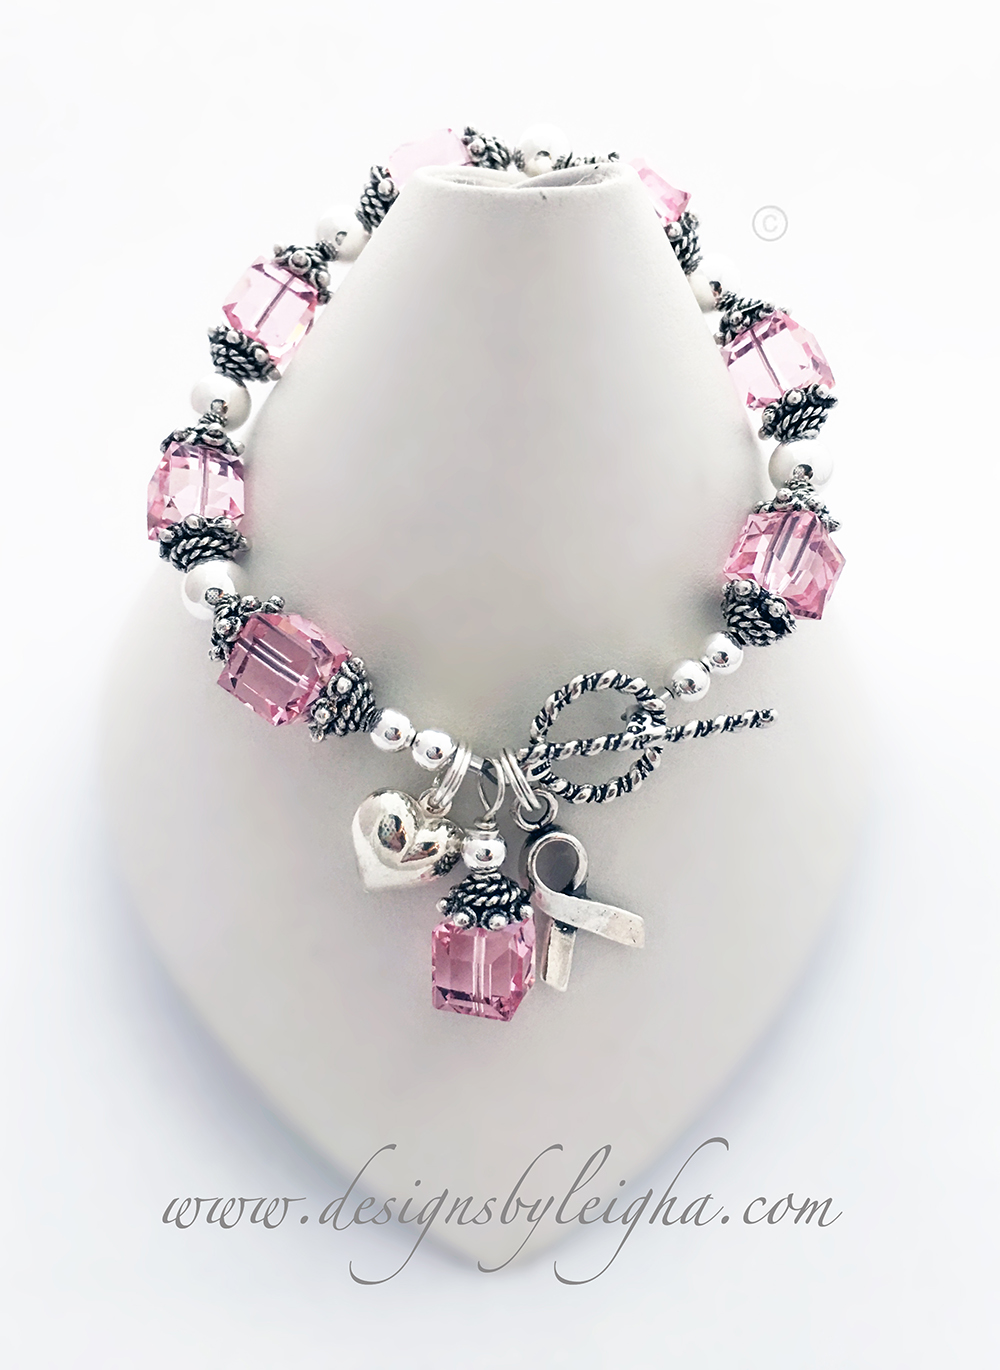 "This ribbon bracelet is shown with pink Swarovski Crystals for Breast Cancer Awareness. The corrdinating pink crystal dangle charm and ribbon charm are included in the price. They picked the Twisted Toggle clasp (free). This bracelet is 6 1/2"" and they added a Puffed Heart Charm."